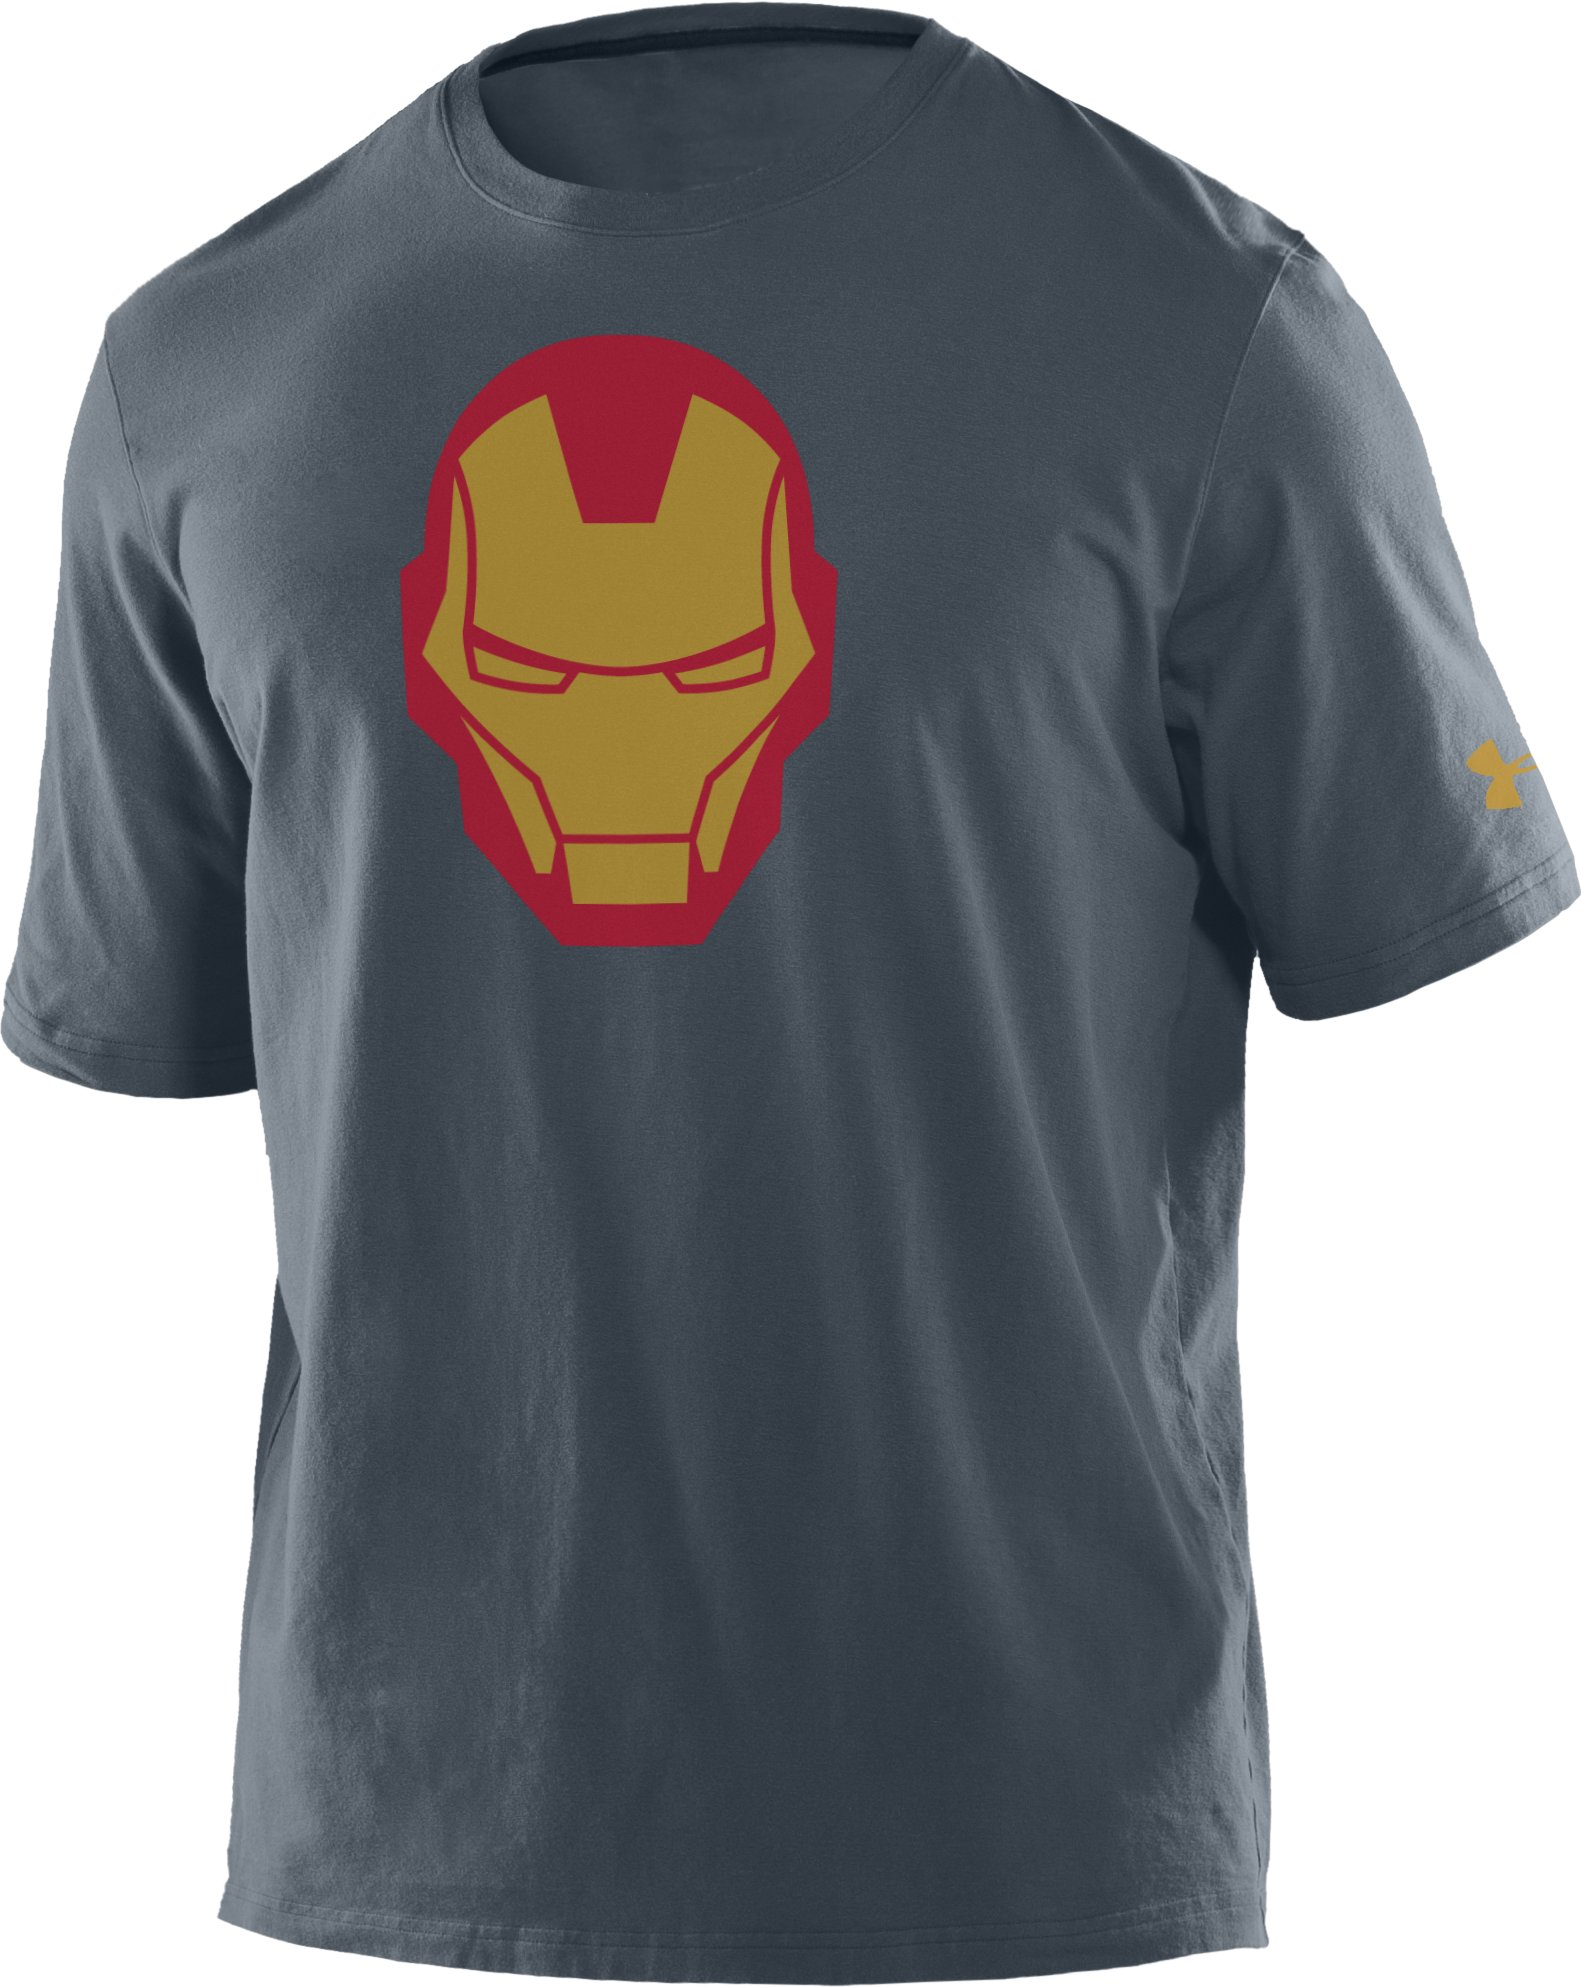 Boys' Under Armour® Alter Ego Iron Man Helmet T-Shirt, Charcoal, zoomed image